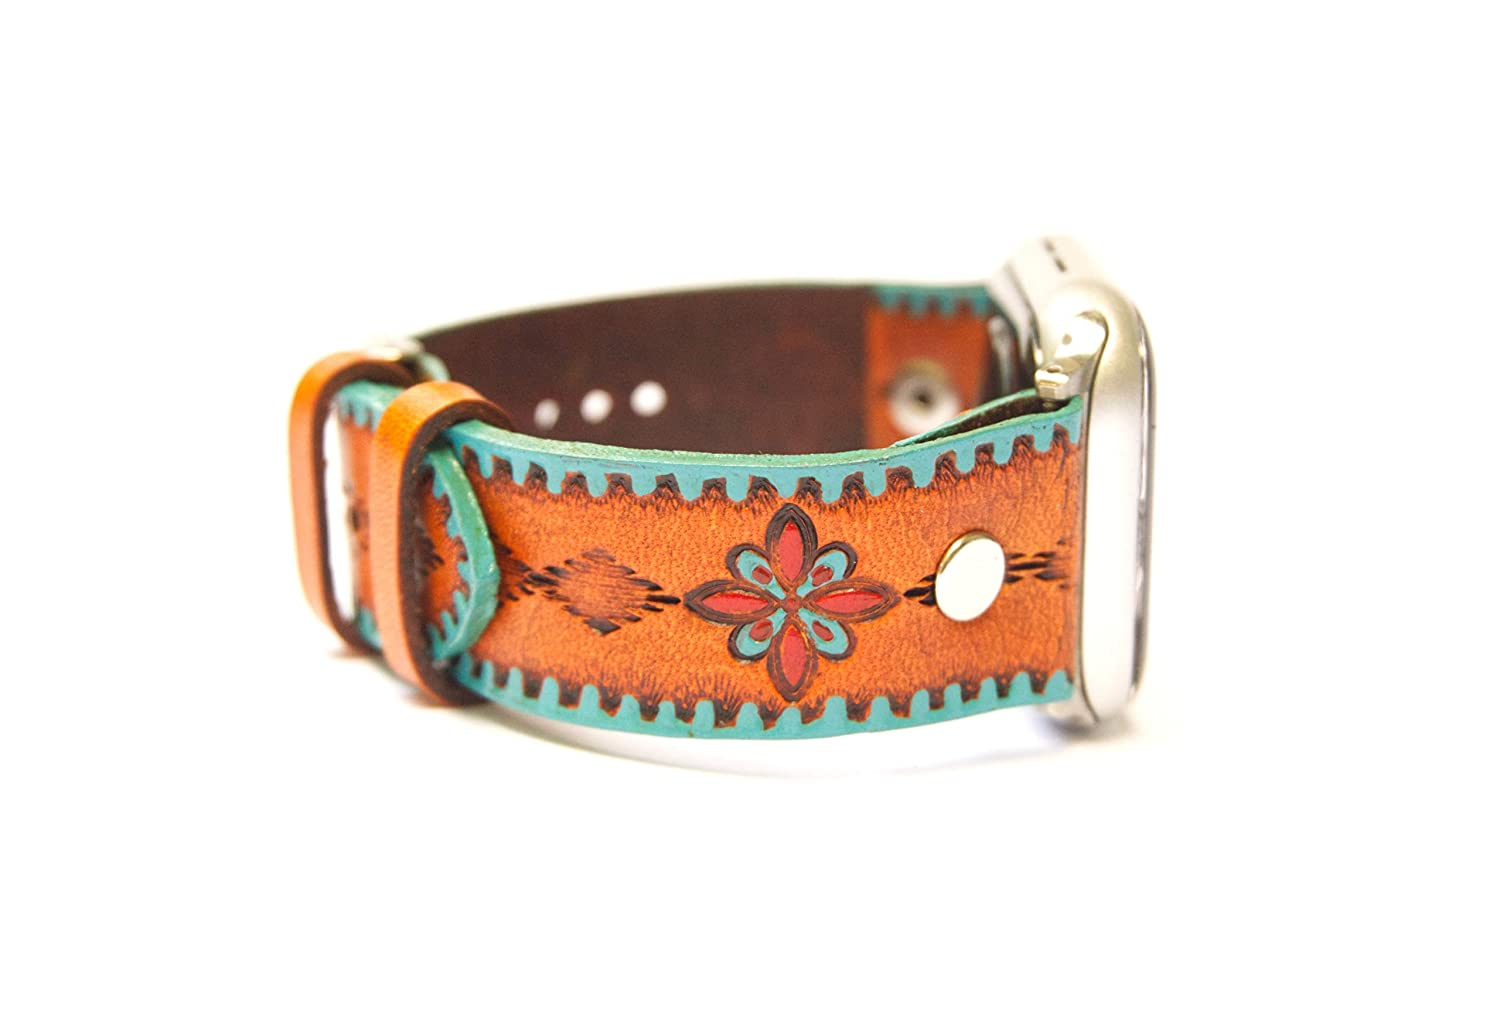 Handmade Southwestern Leather Apple Watch Band for 38mm 40mm 42mm 44mm Models with Turquoise and Red Accents